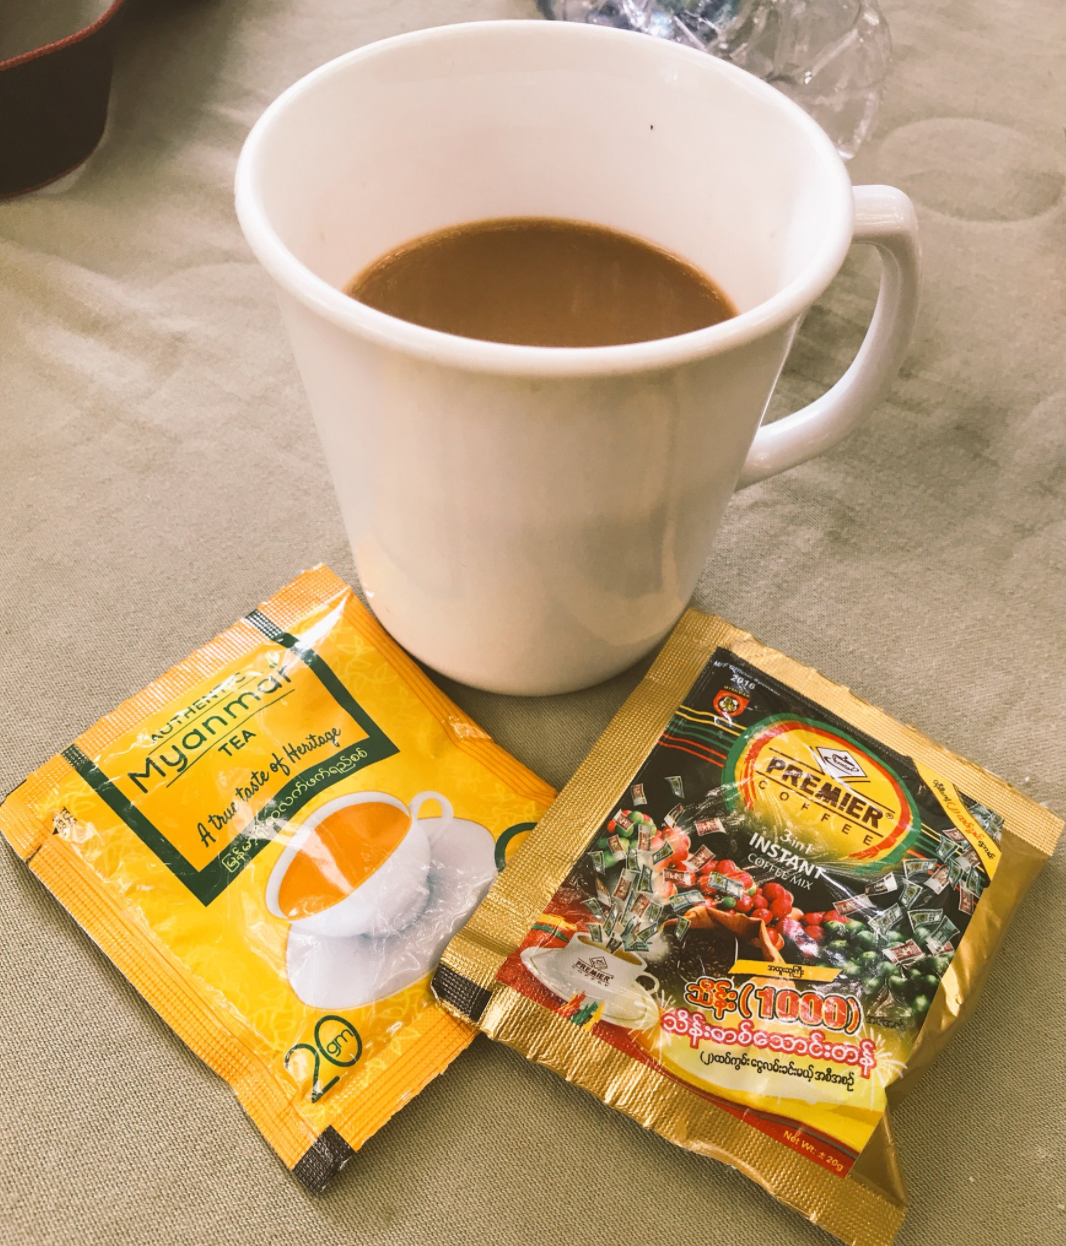 The packets of instant Myanmar tea and coffee my cousin brought back